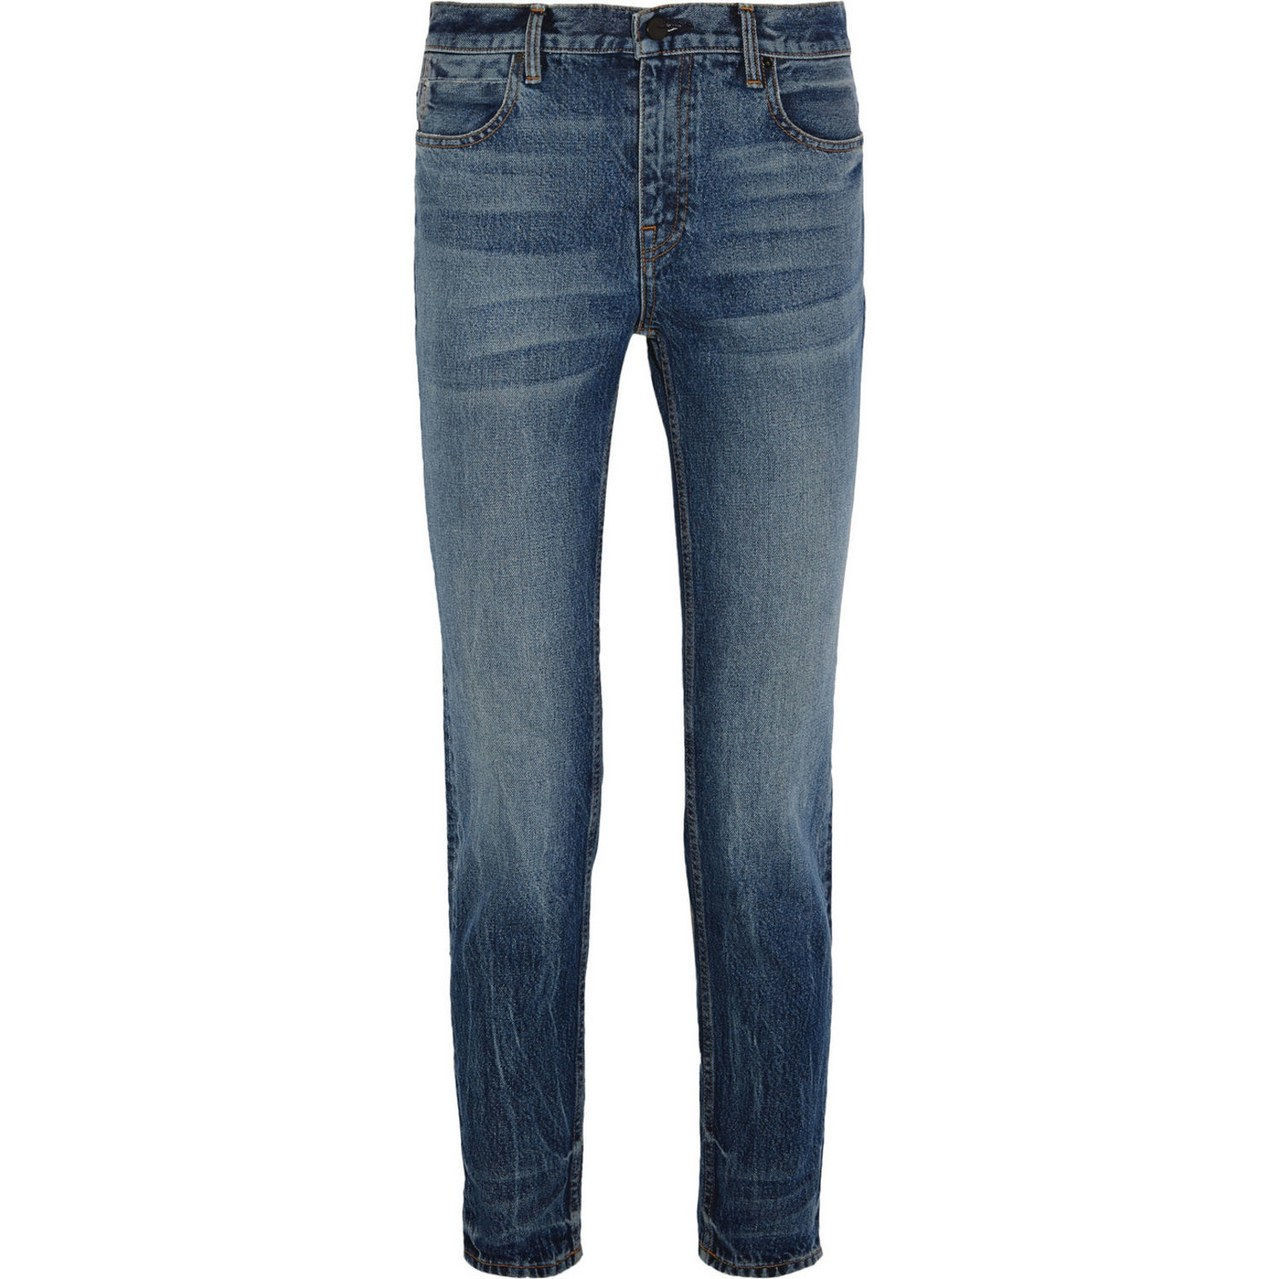 सर्दी weather denim alex wang jeans